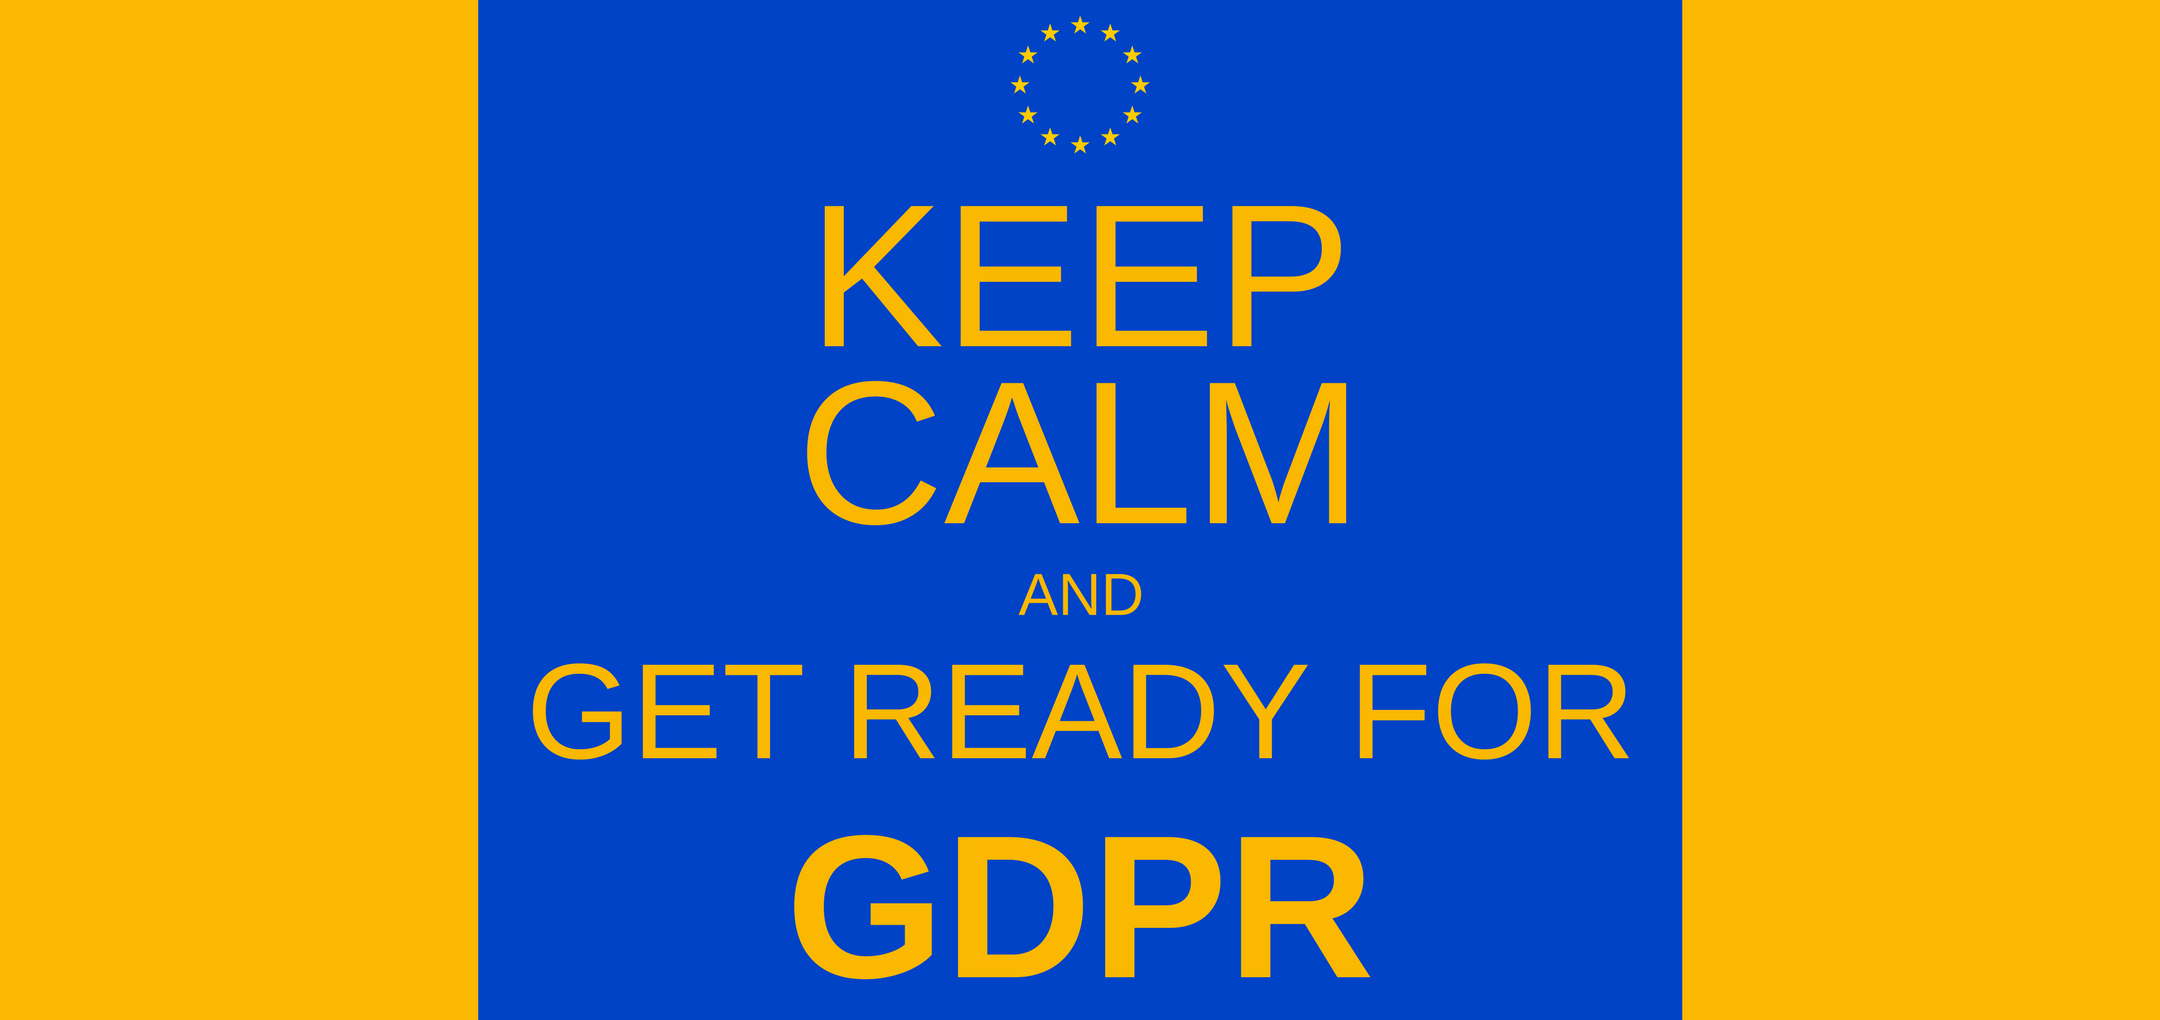 Keep Calm and get ready for GDPR